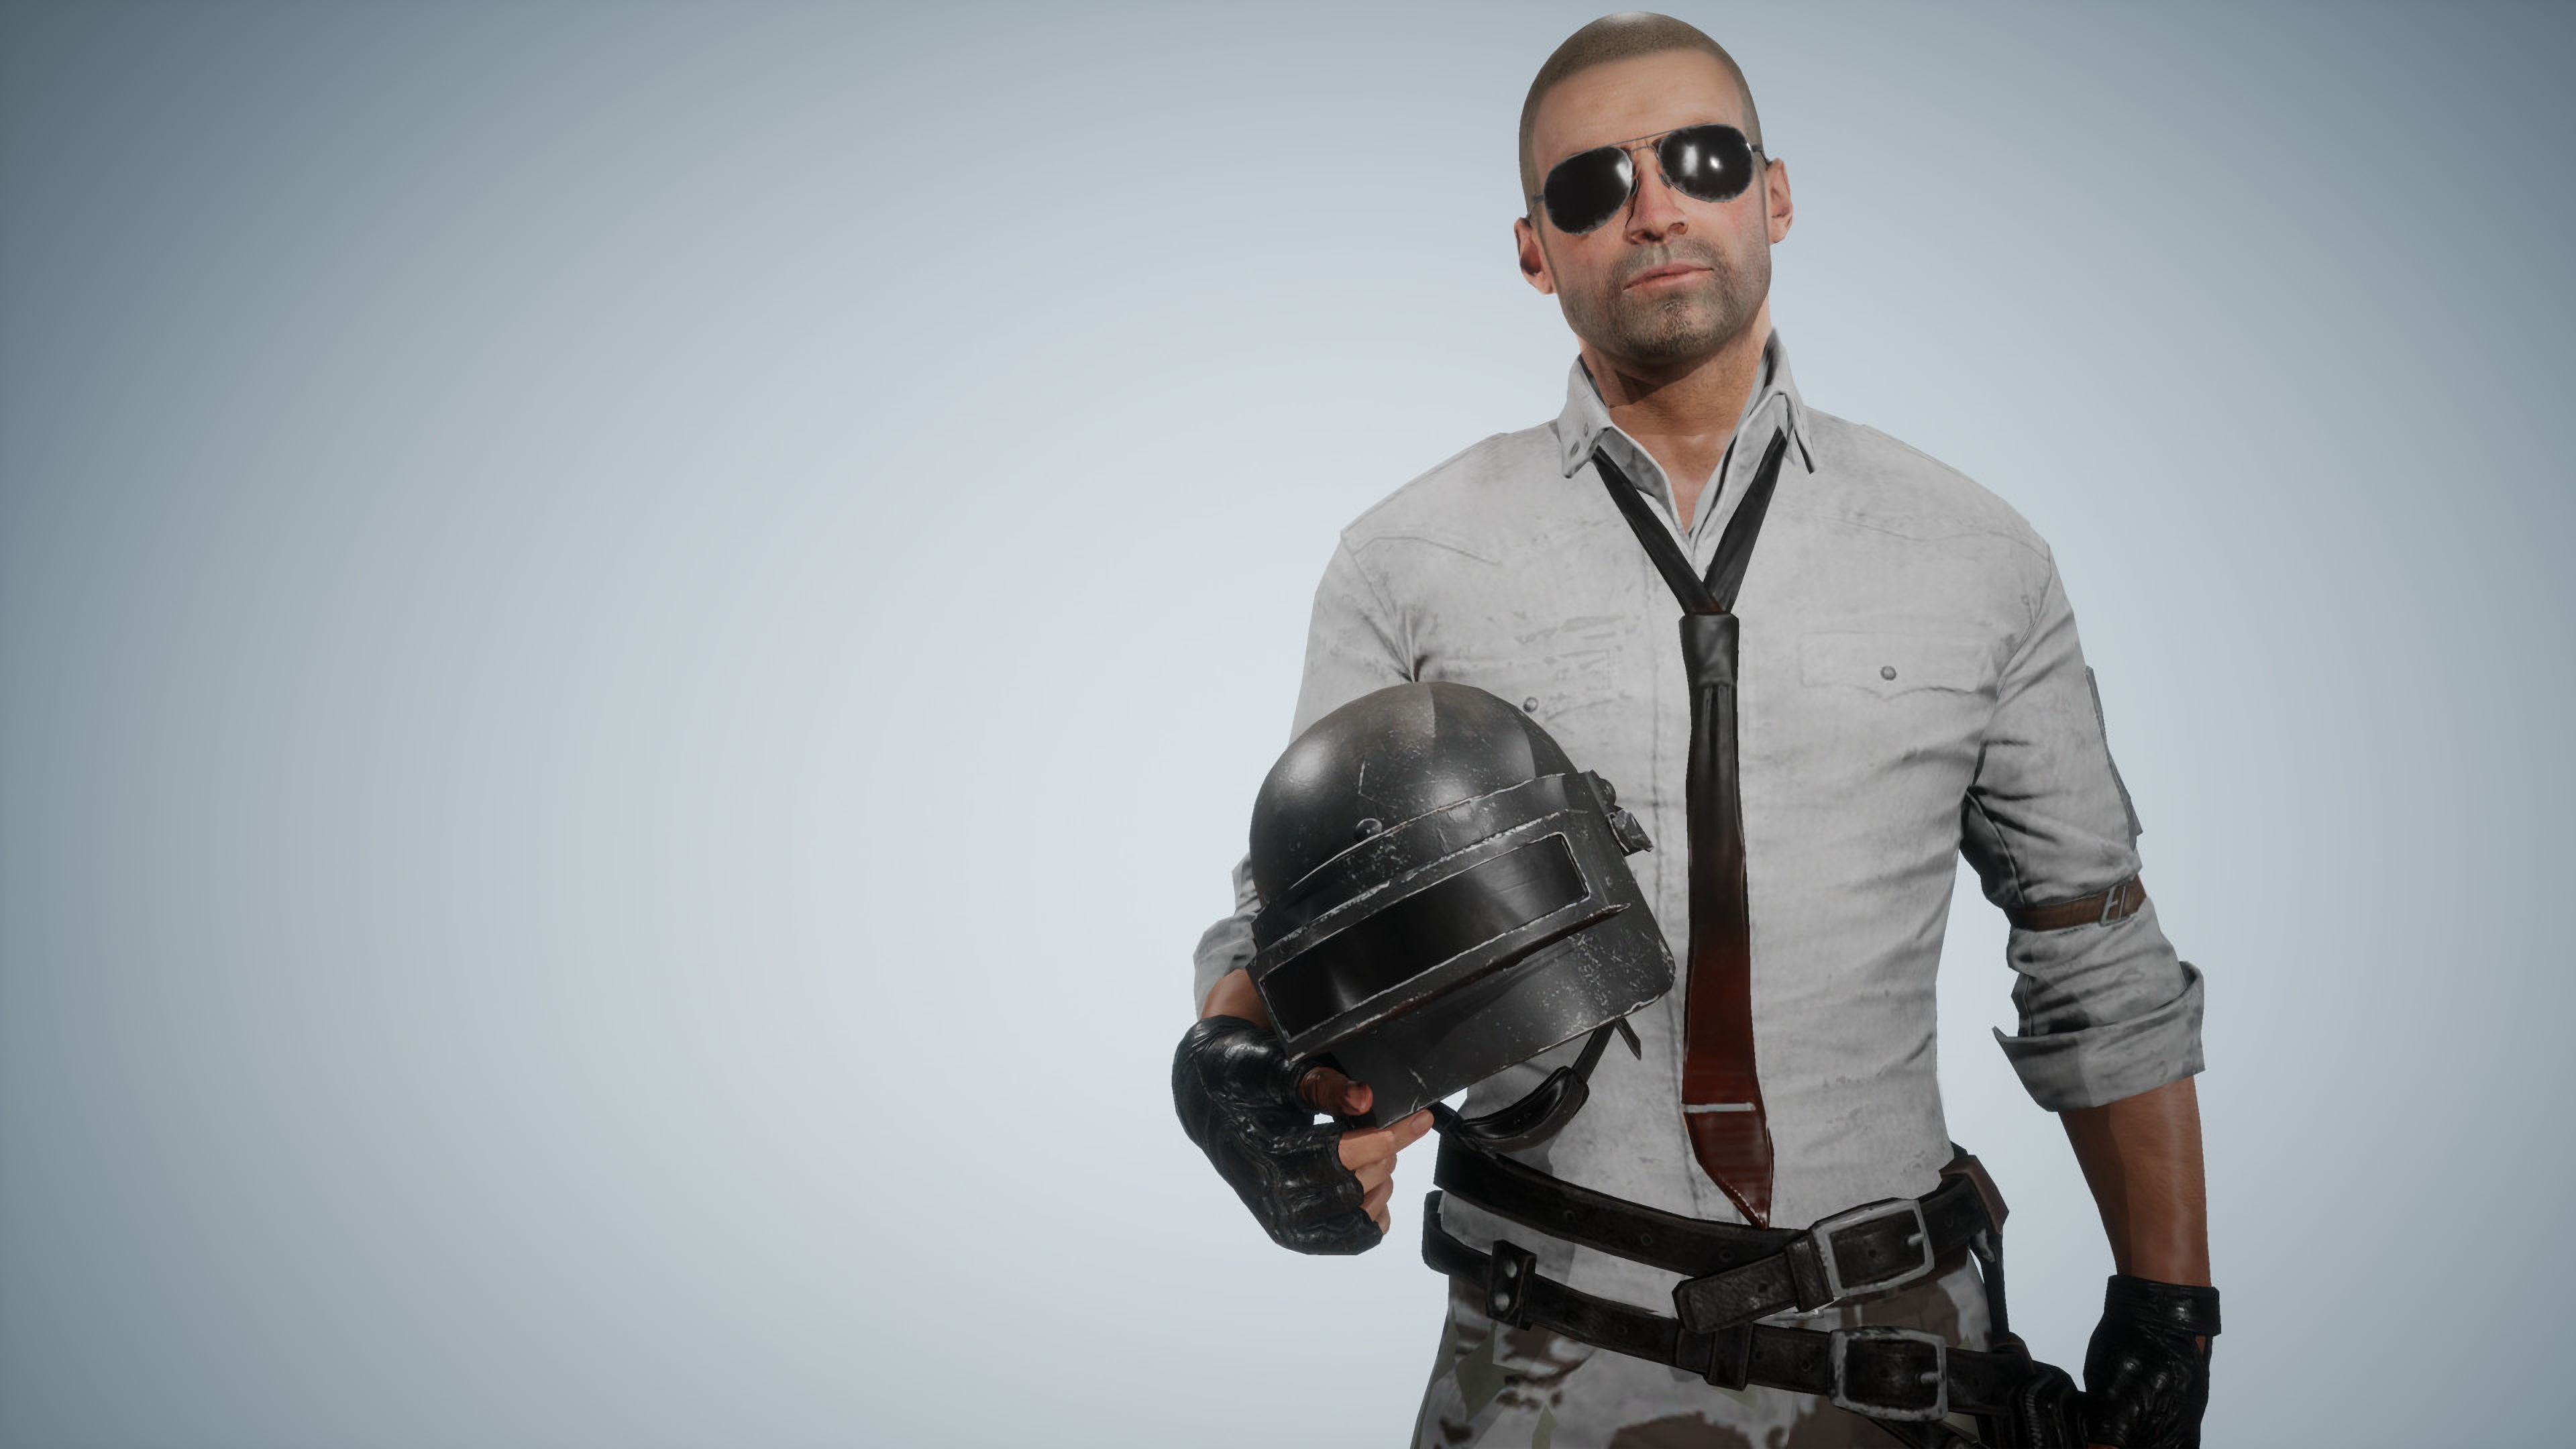 Pubg Helmet Guy Without Helmet, HD Games, 4k Wallpapers